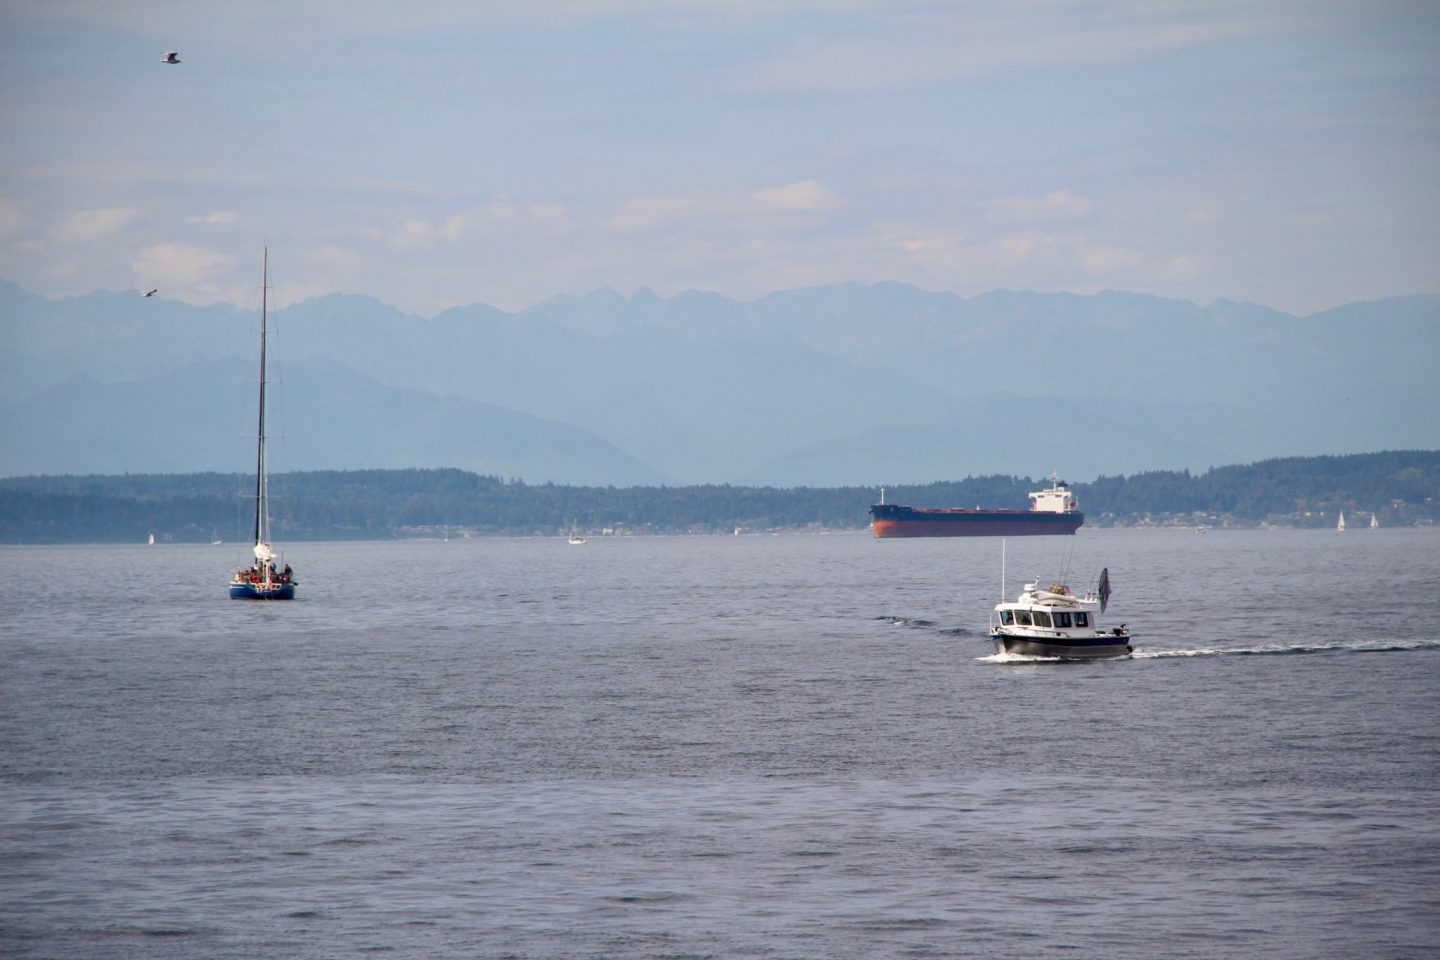 Puget Sound in Seattle, Washington - The Spectacular Adventurer